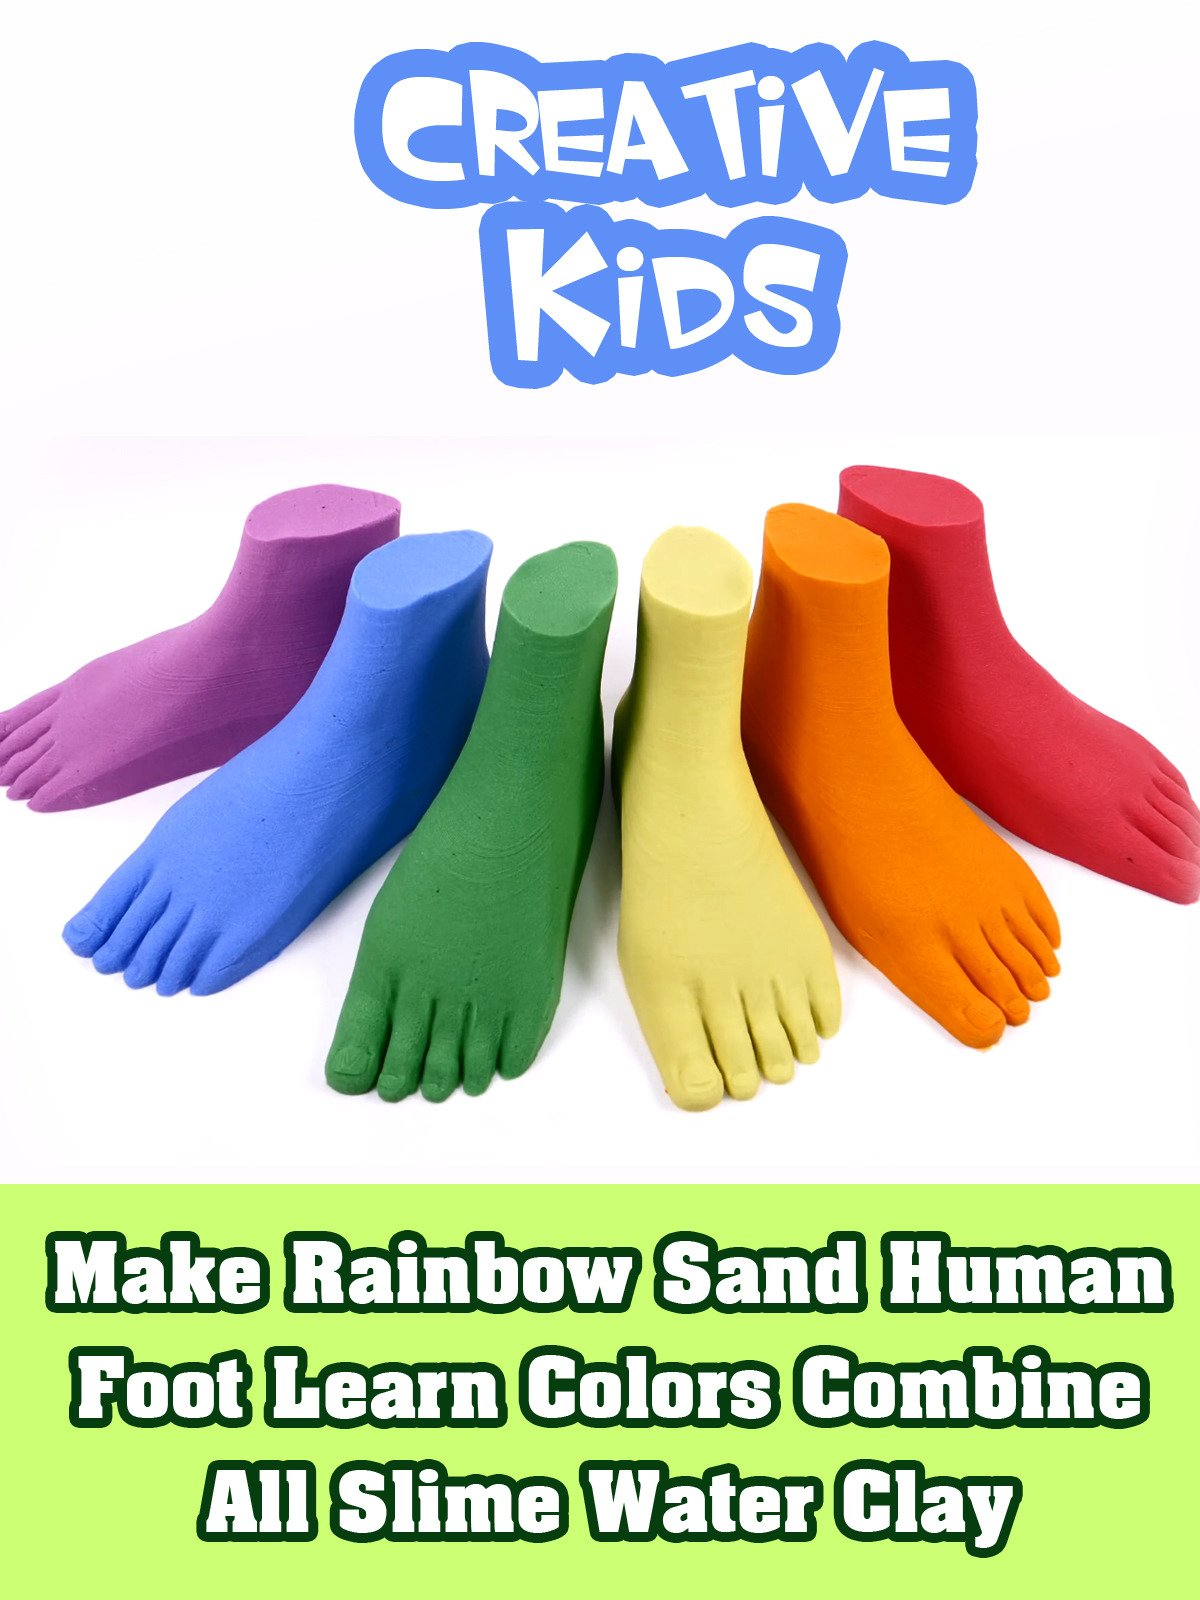 Make Rainbow Sand Human Foot Learn Colors Combine All Slime Water Clay